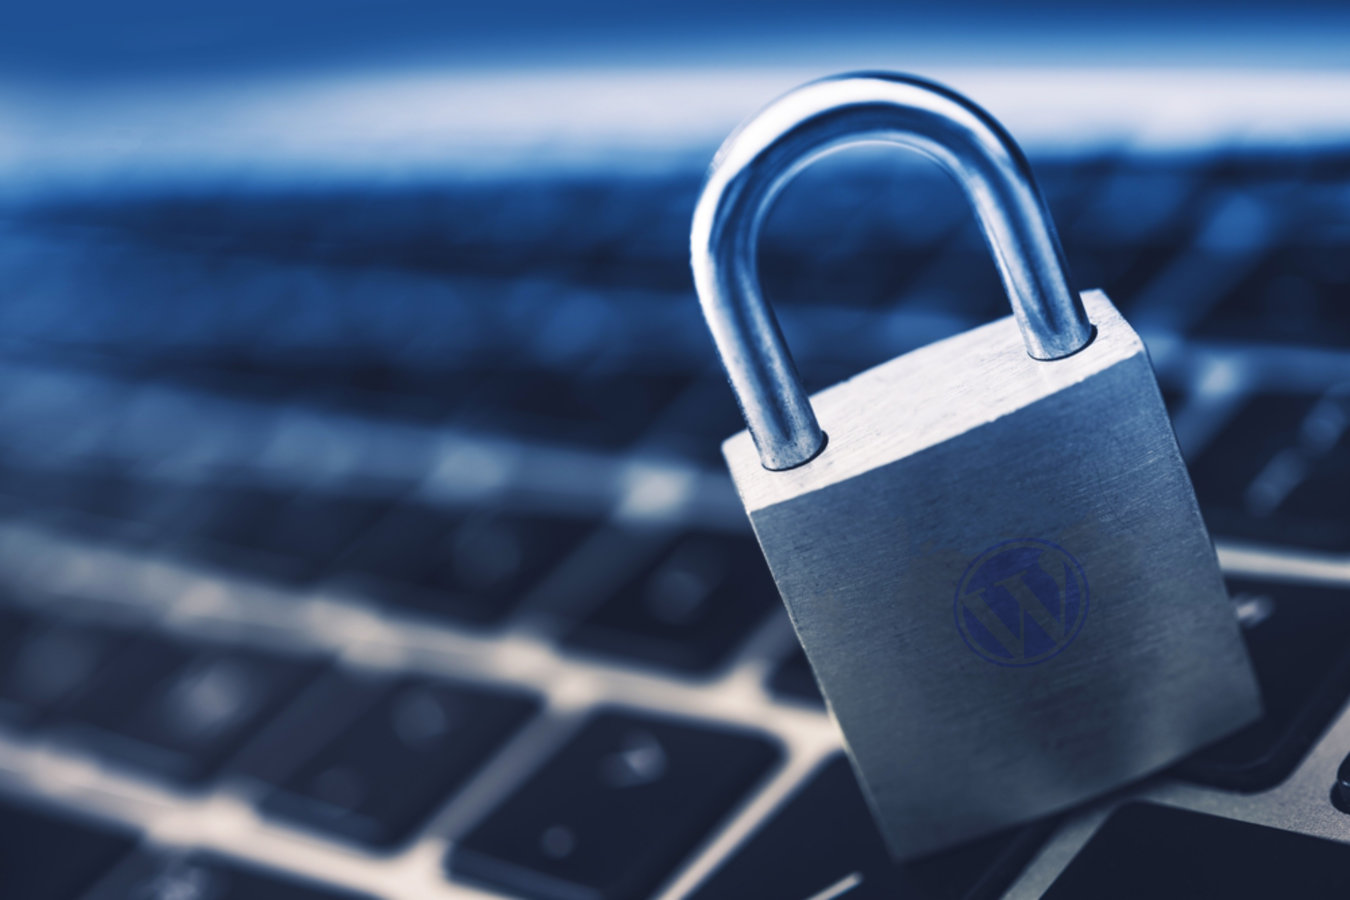 WordPress security for the casual blogger or small business with limited resources